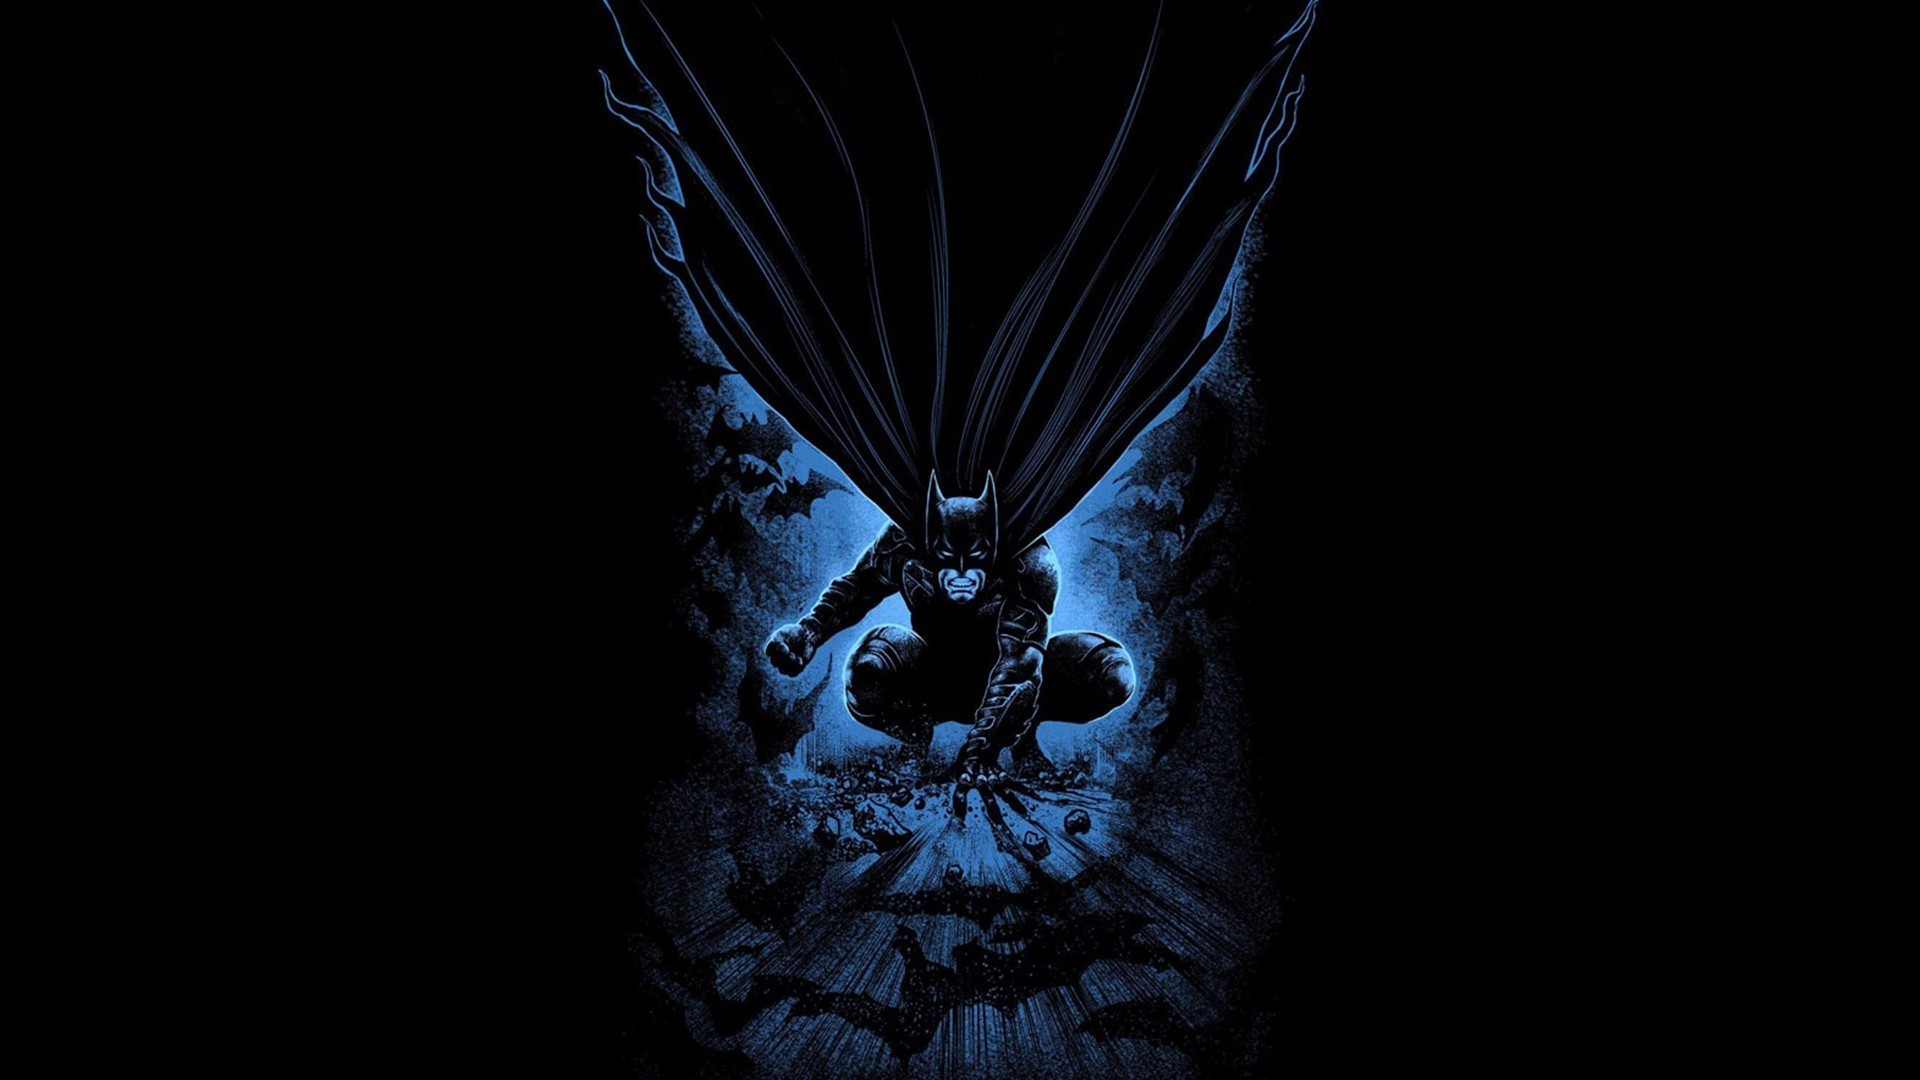 Nightwing Wallpaper Phone (72+ images)